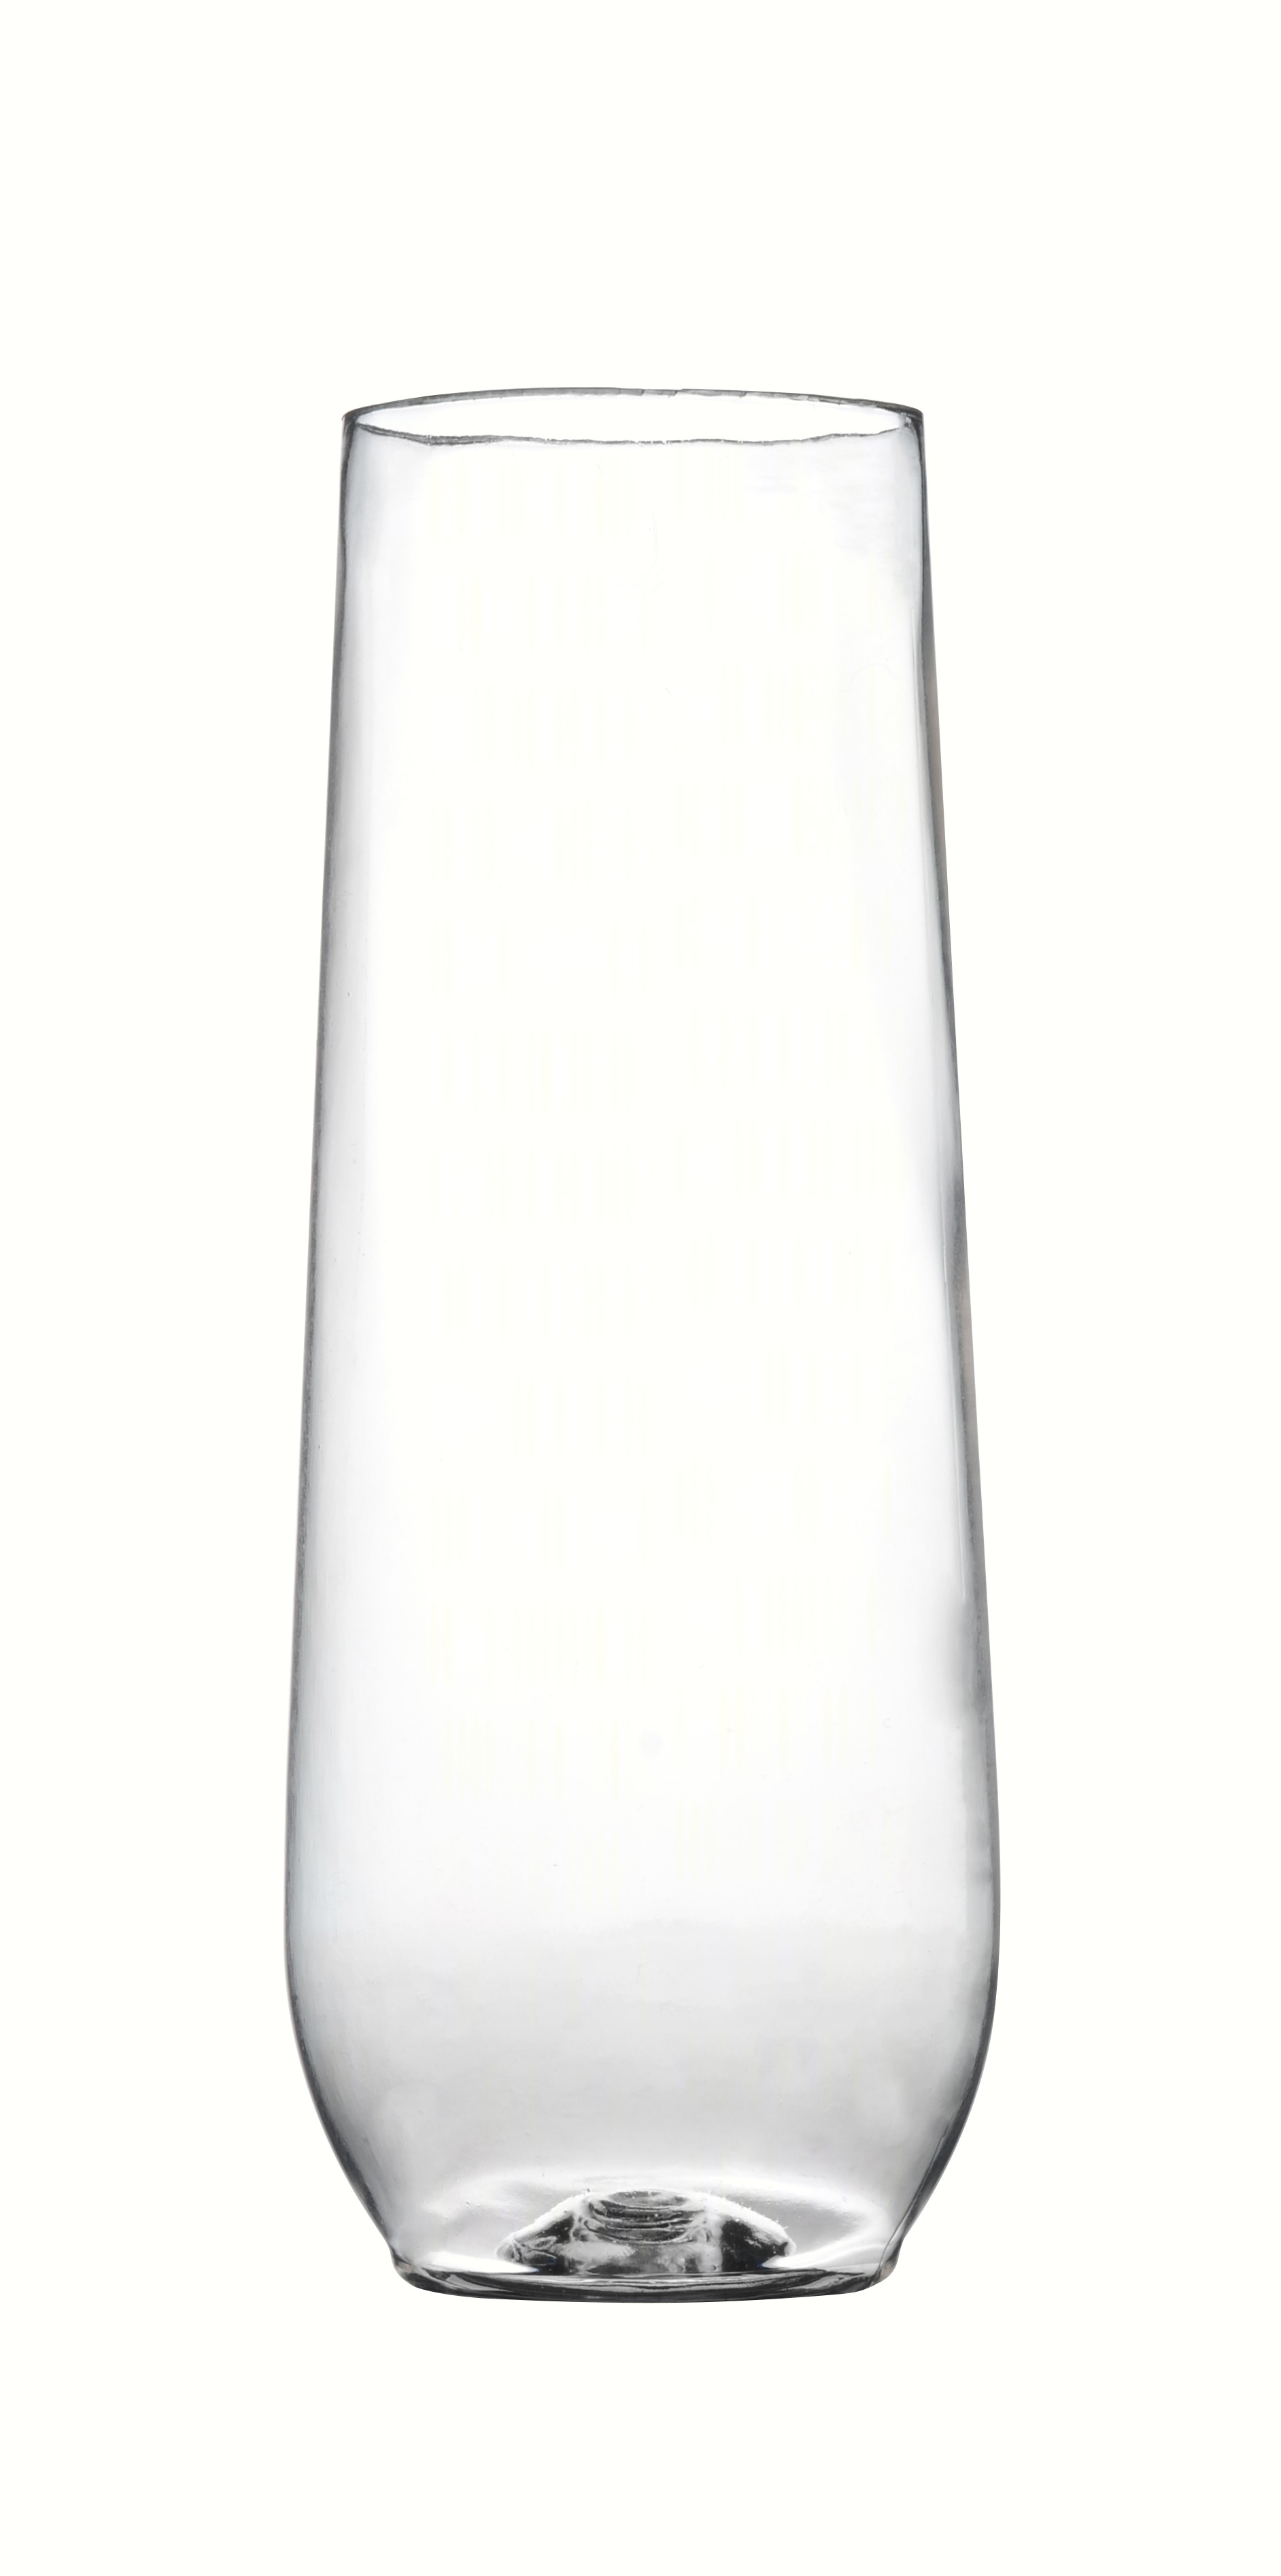 10 oz Stemless Flute - Clear